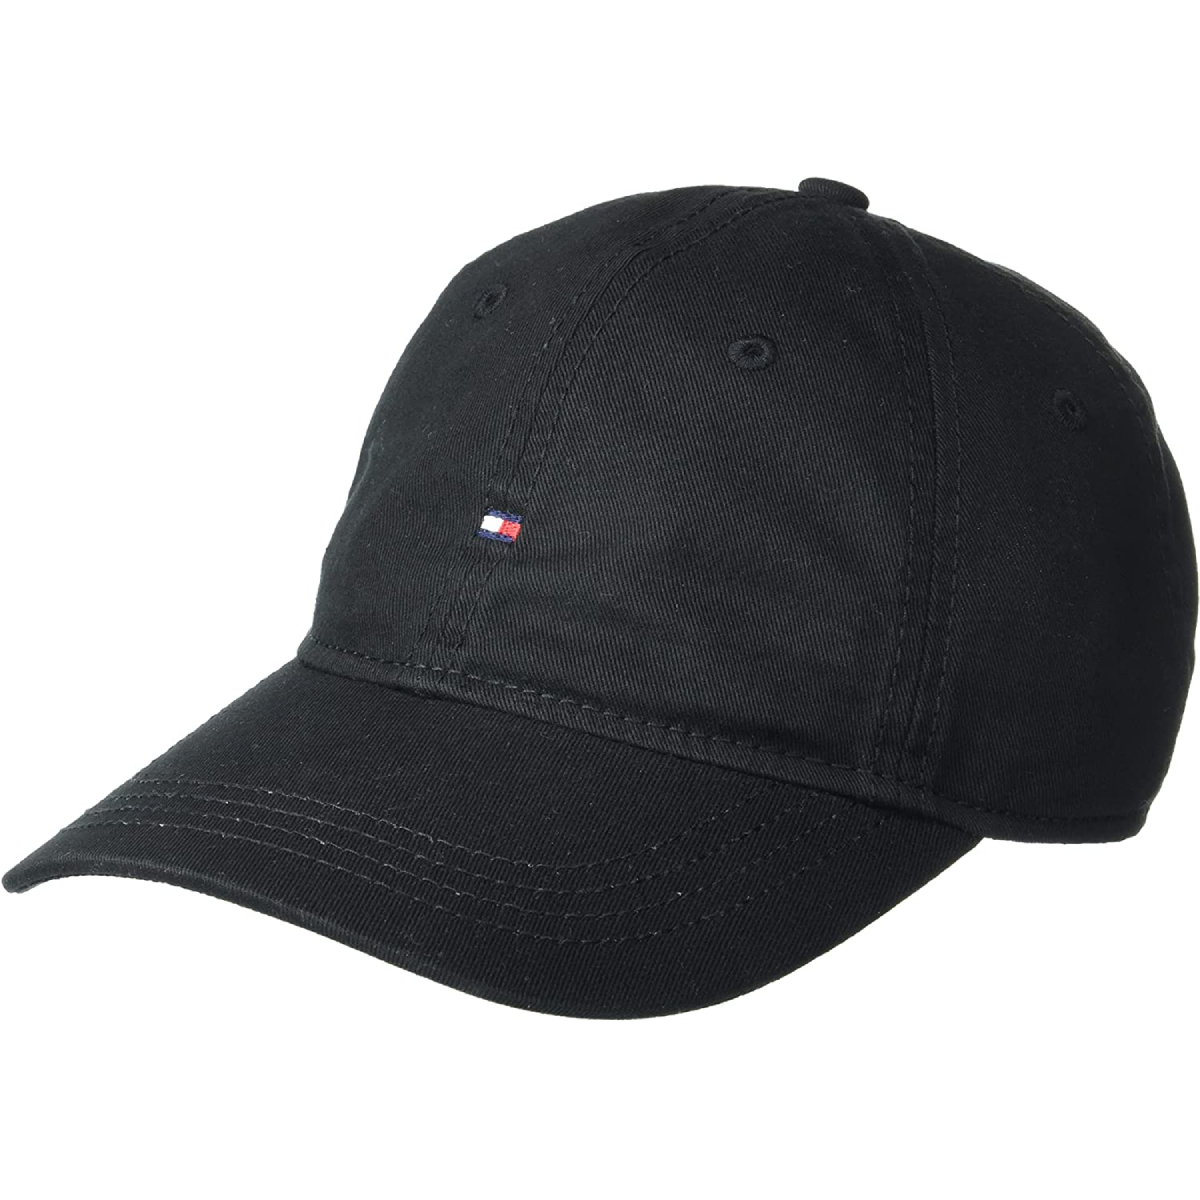 non-tommy-hilfiger-66